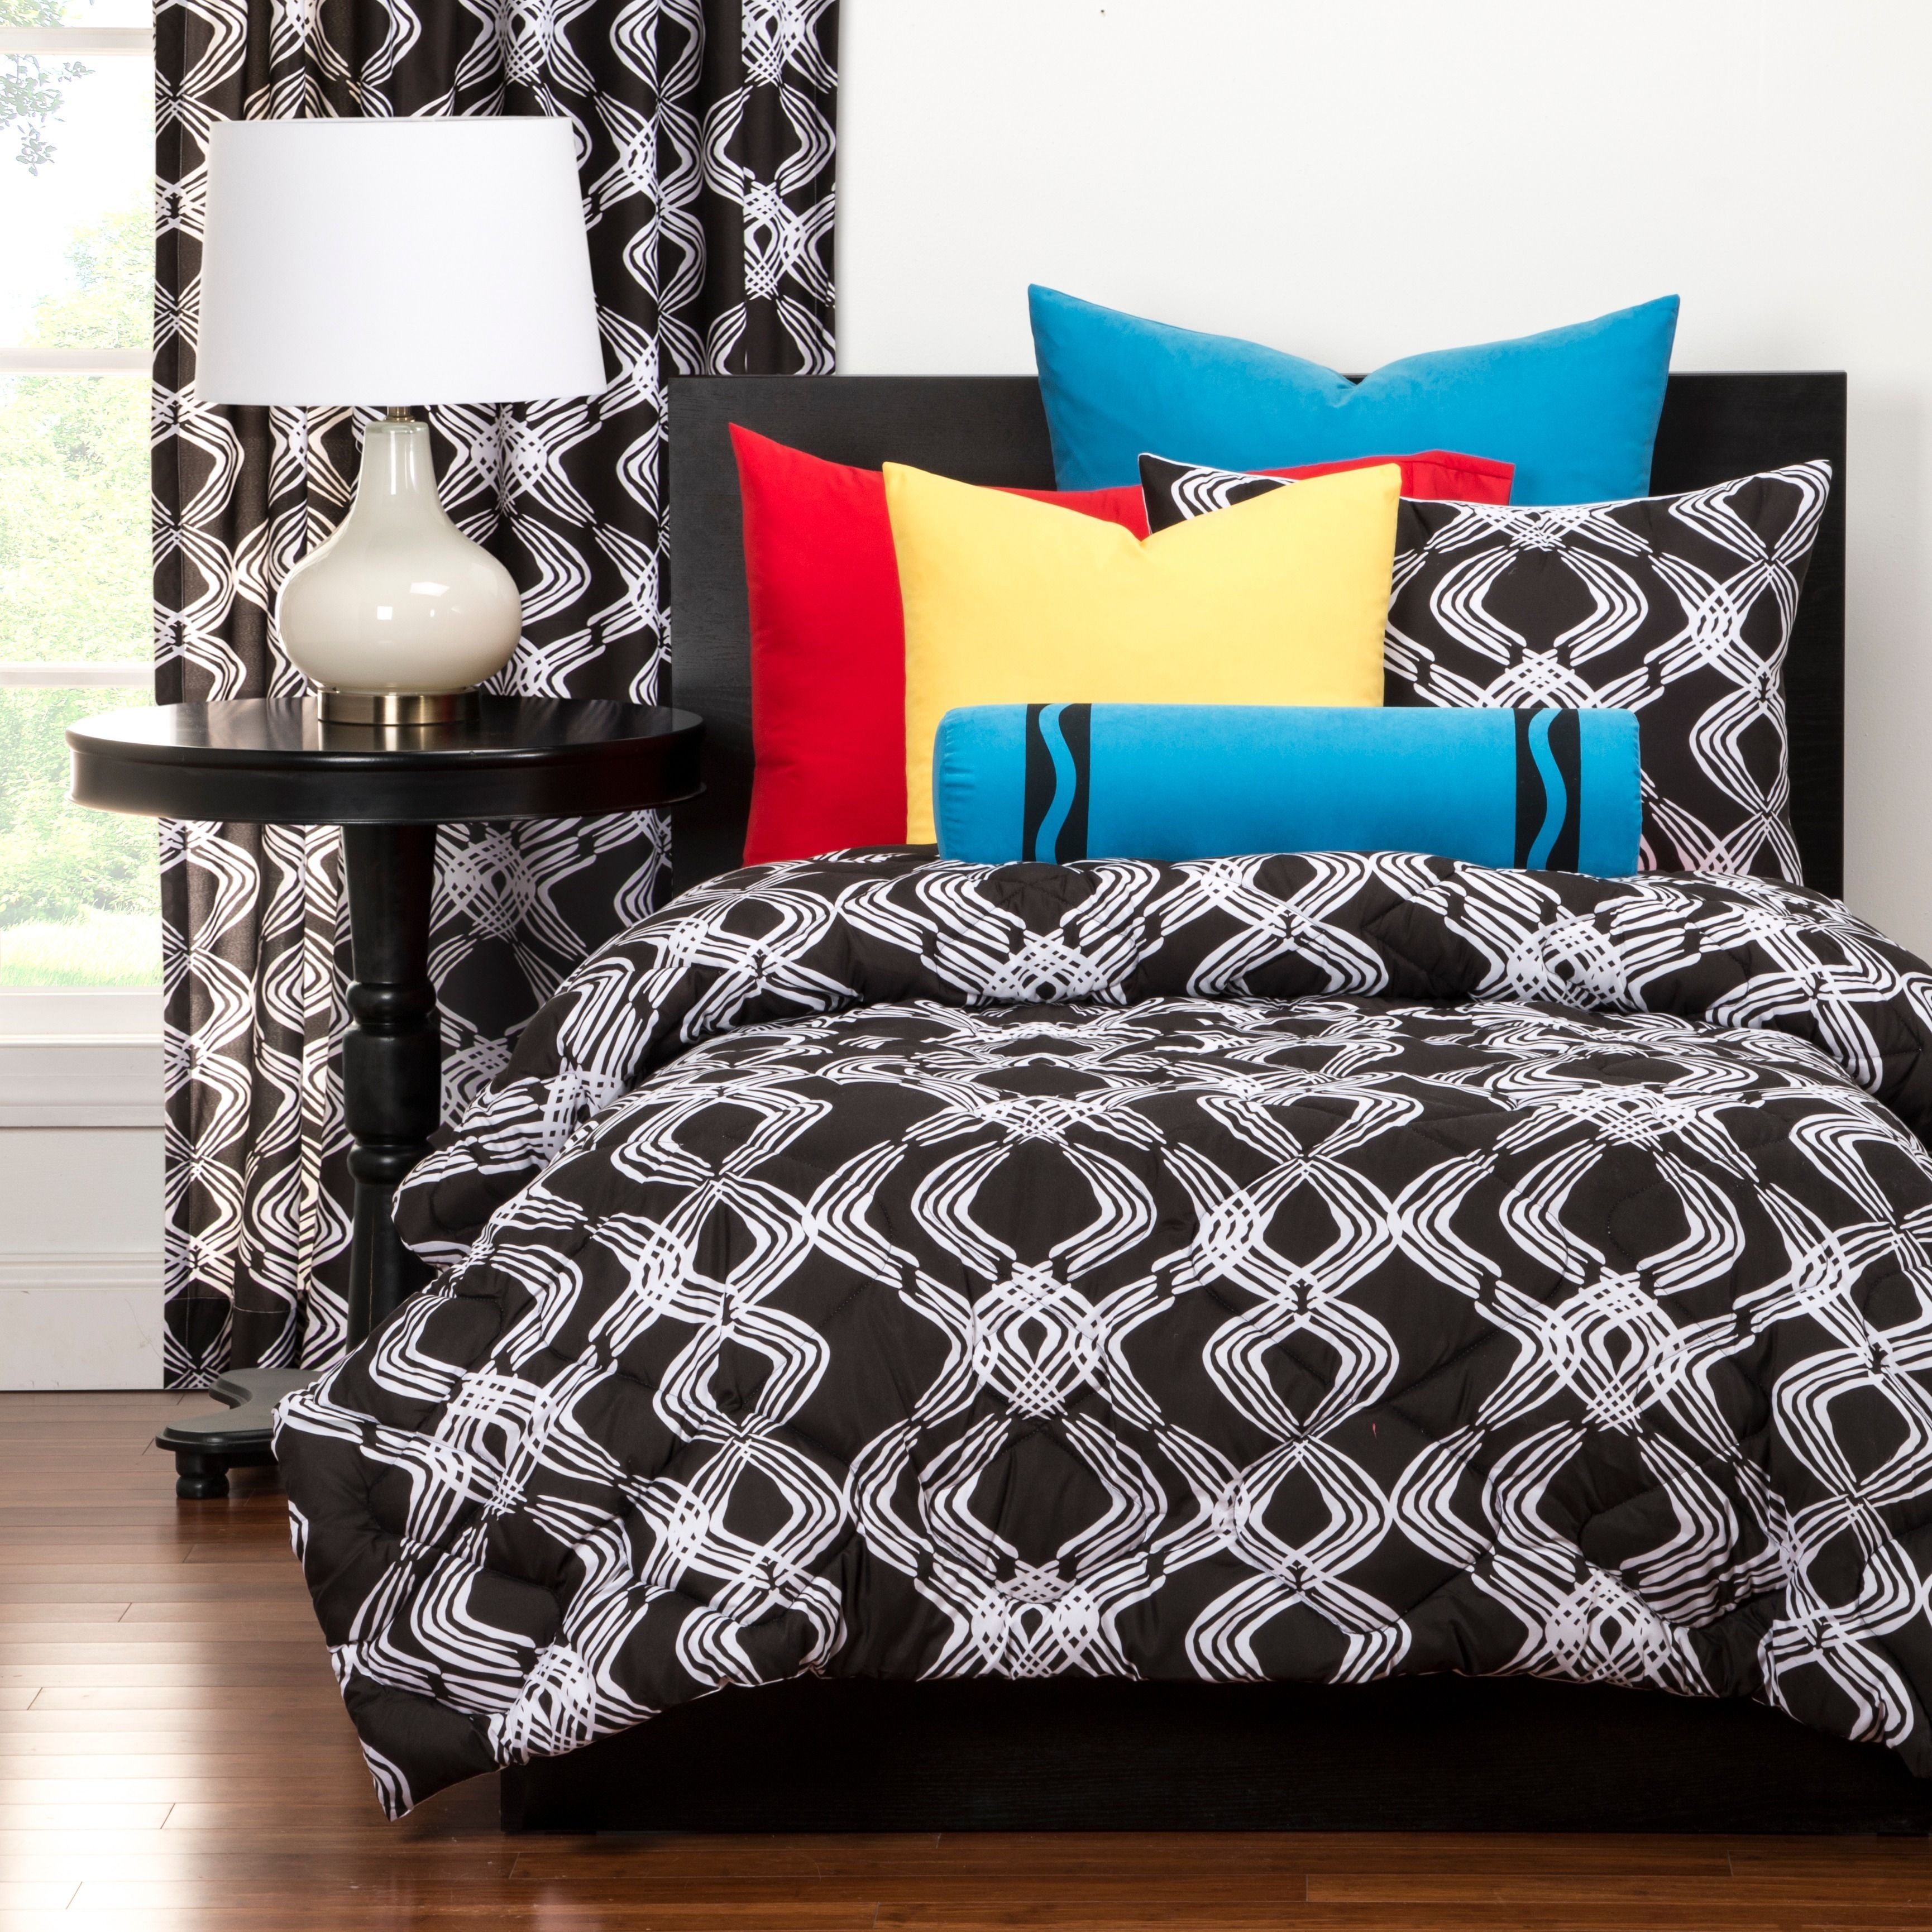 Crayola Infinity 3 Piece Comforter Set Twin 2 Piece Black